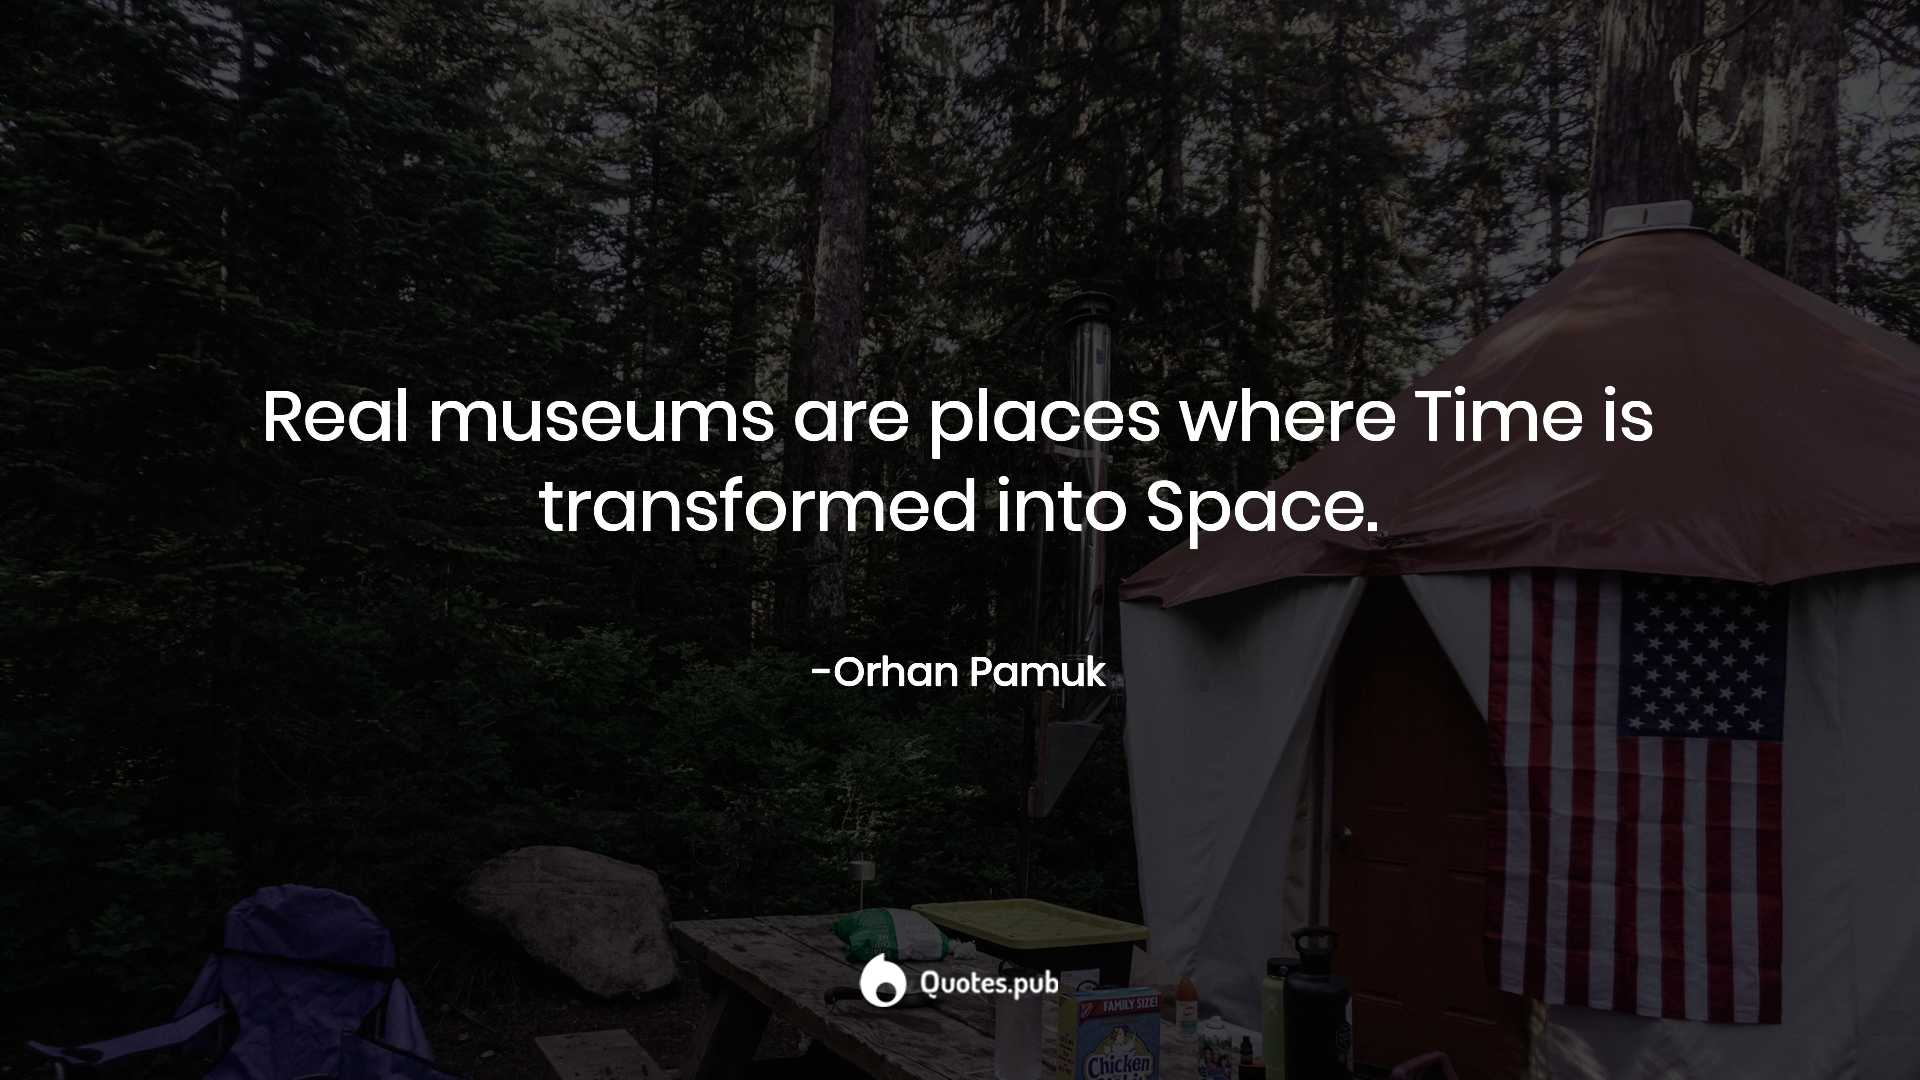 real museums are places where time is tr orhan pamuk quotes pub